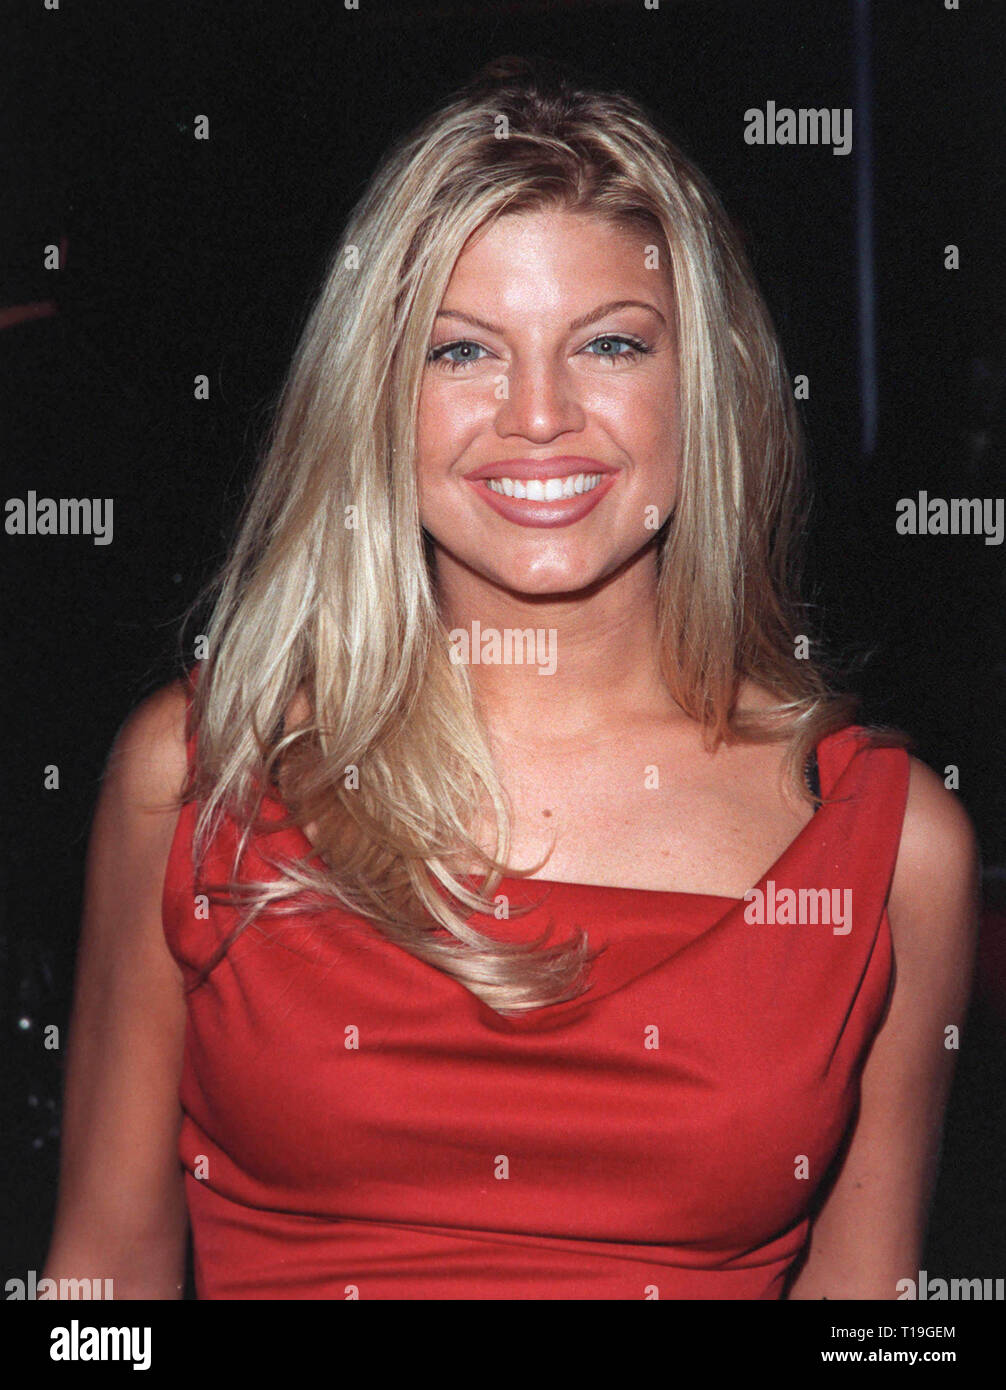 LOS ANGELES, CA - October 13, 1998:  Singer STACY FERGUSON at the Los Angeles premiere of 'Practical Magic' which stars Sandra Bullock, Nicole Kidman, Aidan Quinn & Stockard Channing. - Stock Image